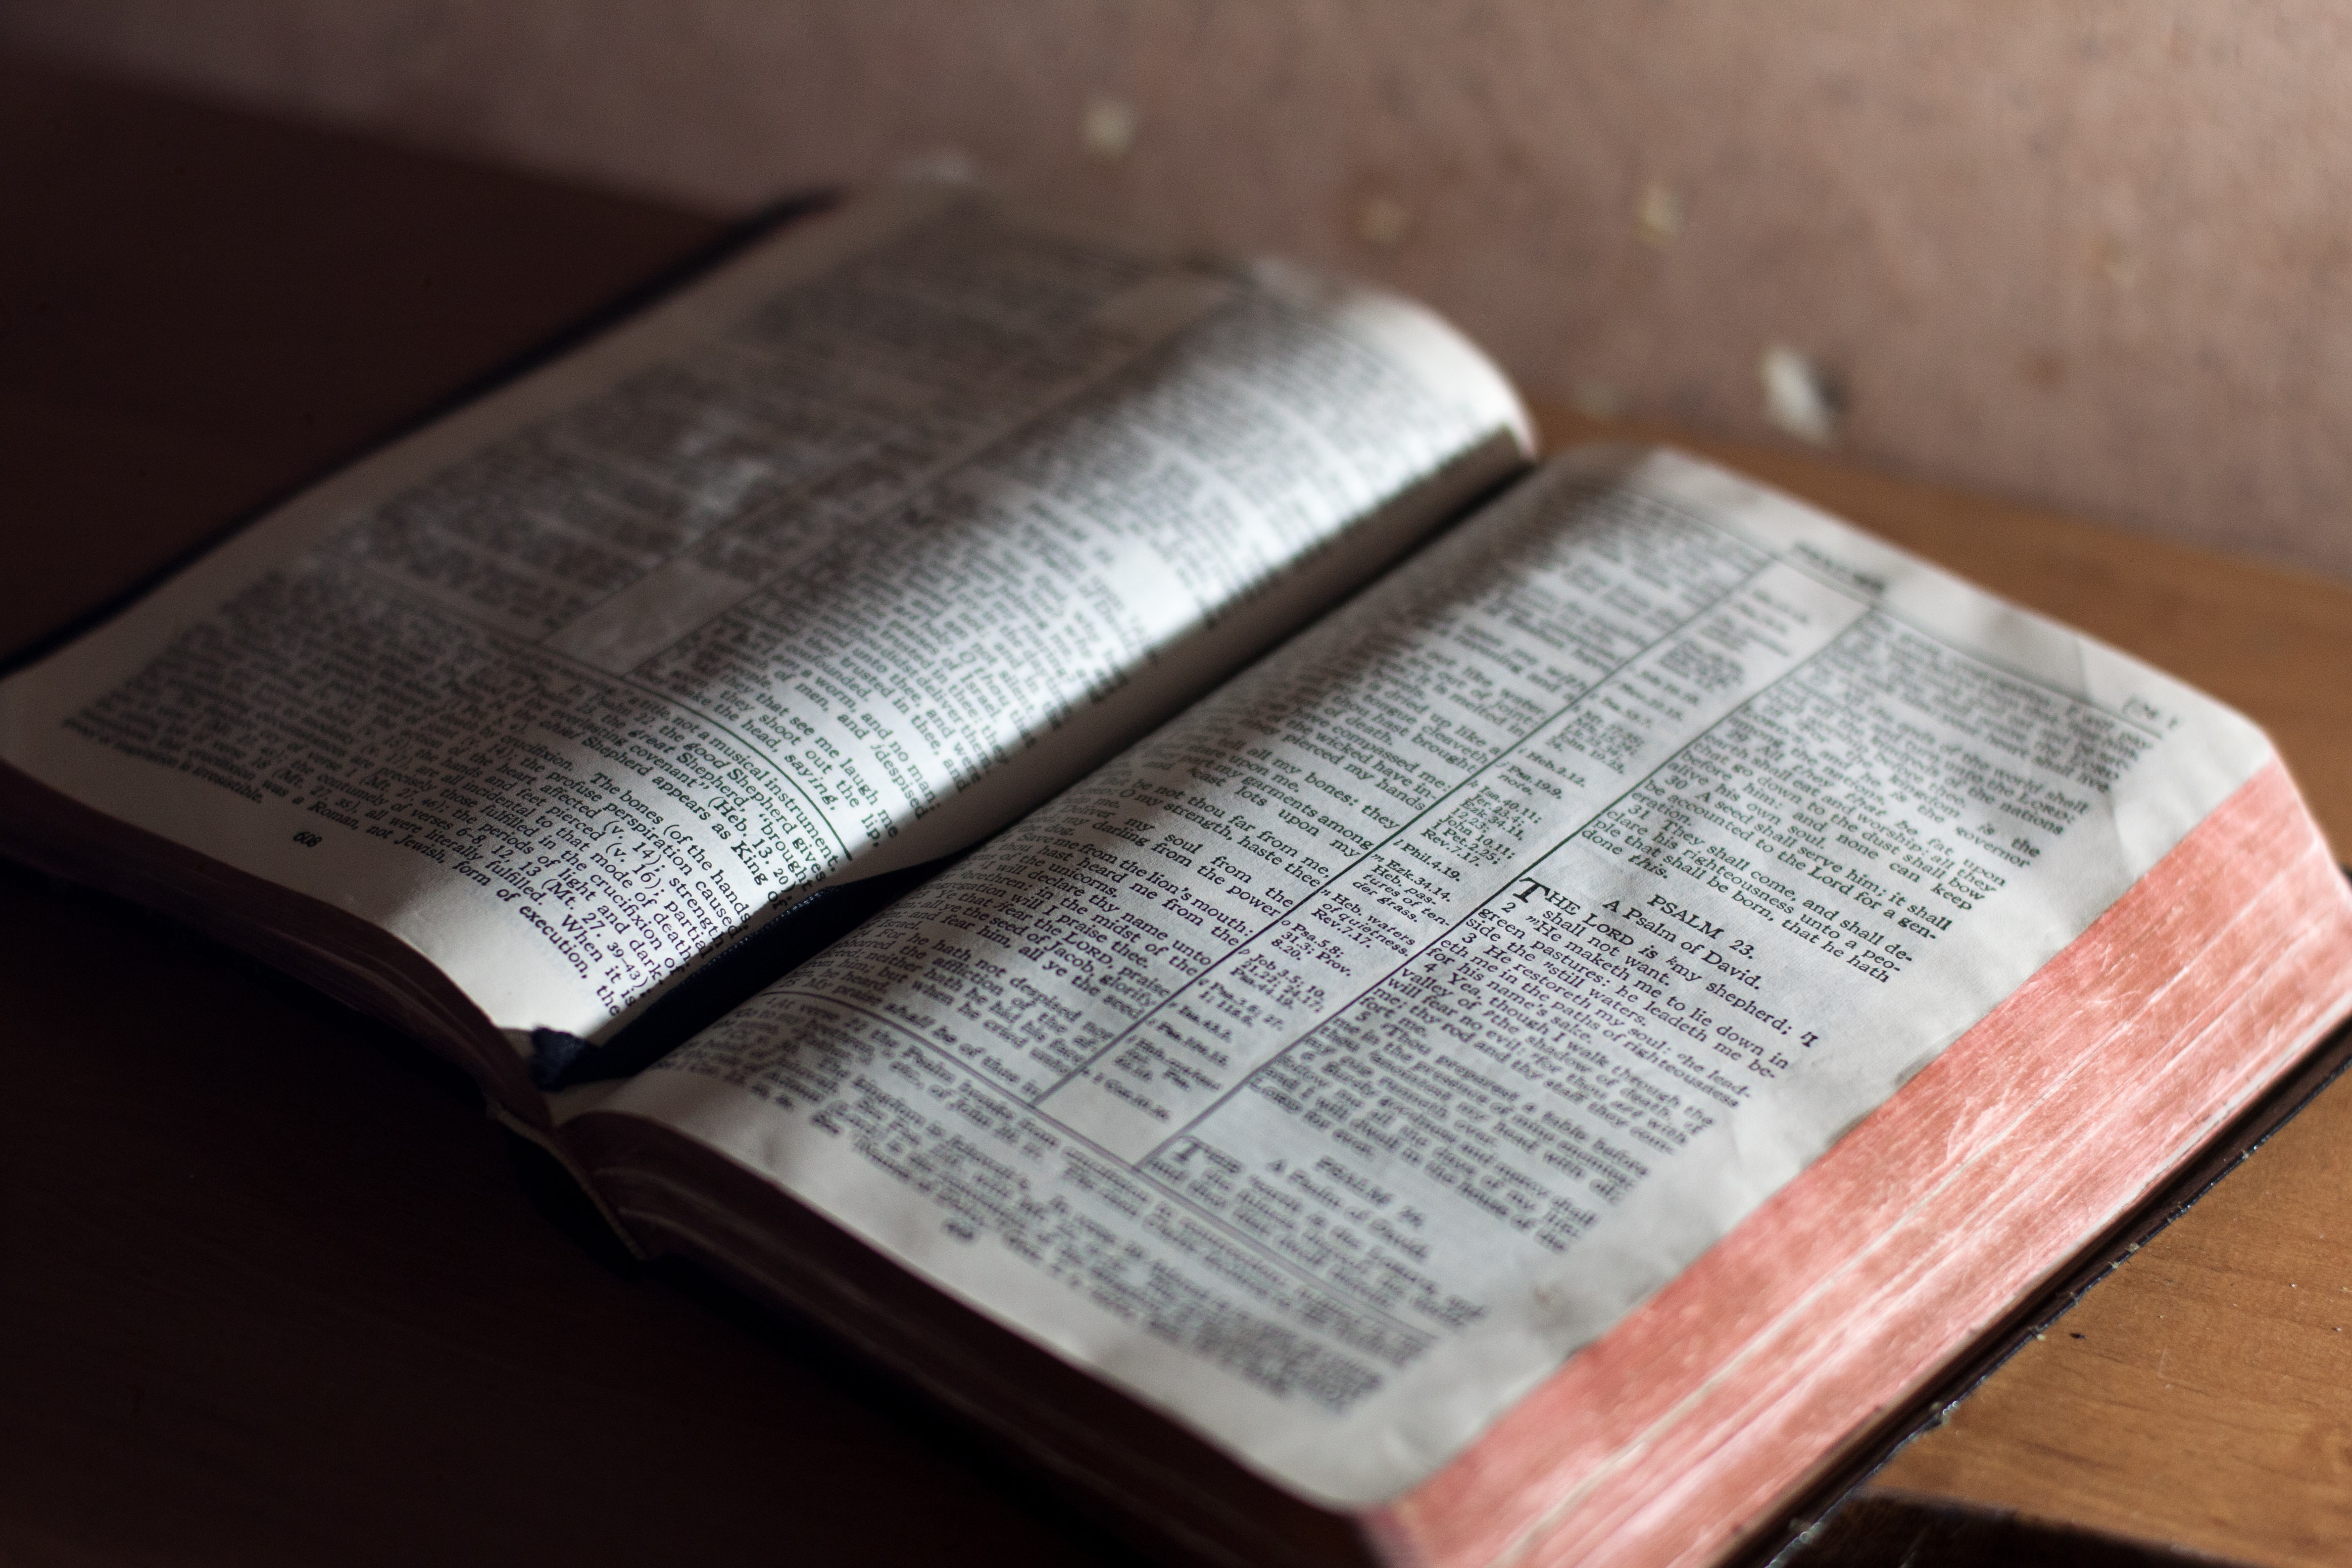 Old vintage bible with worn pages open to a reading